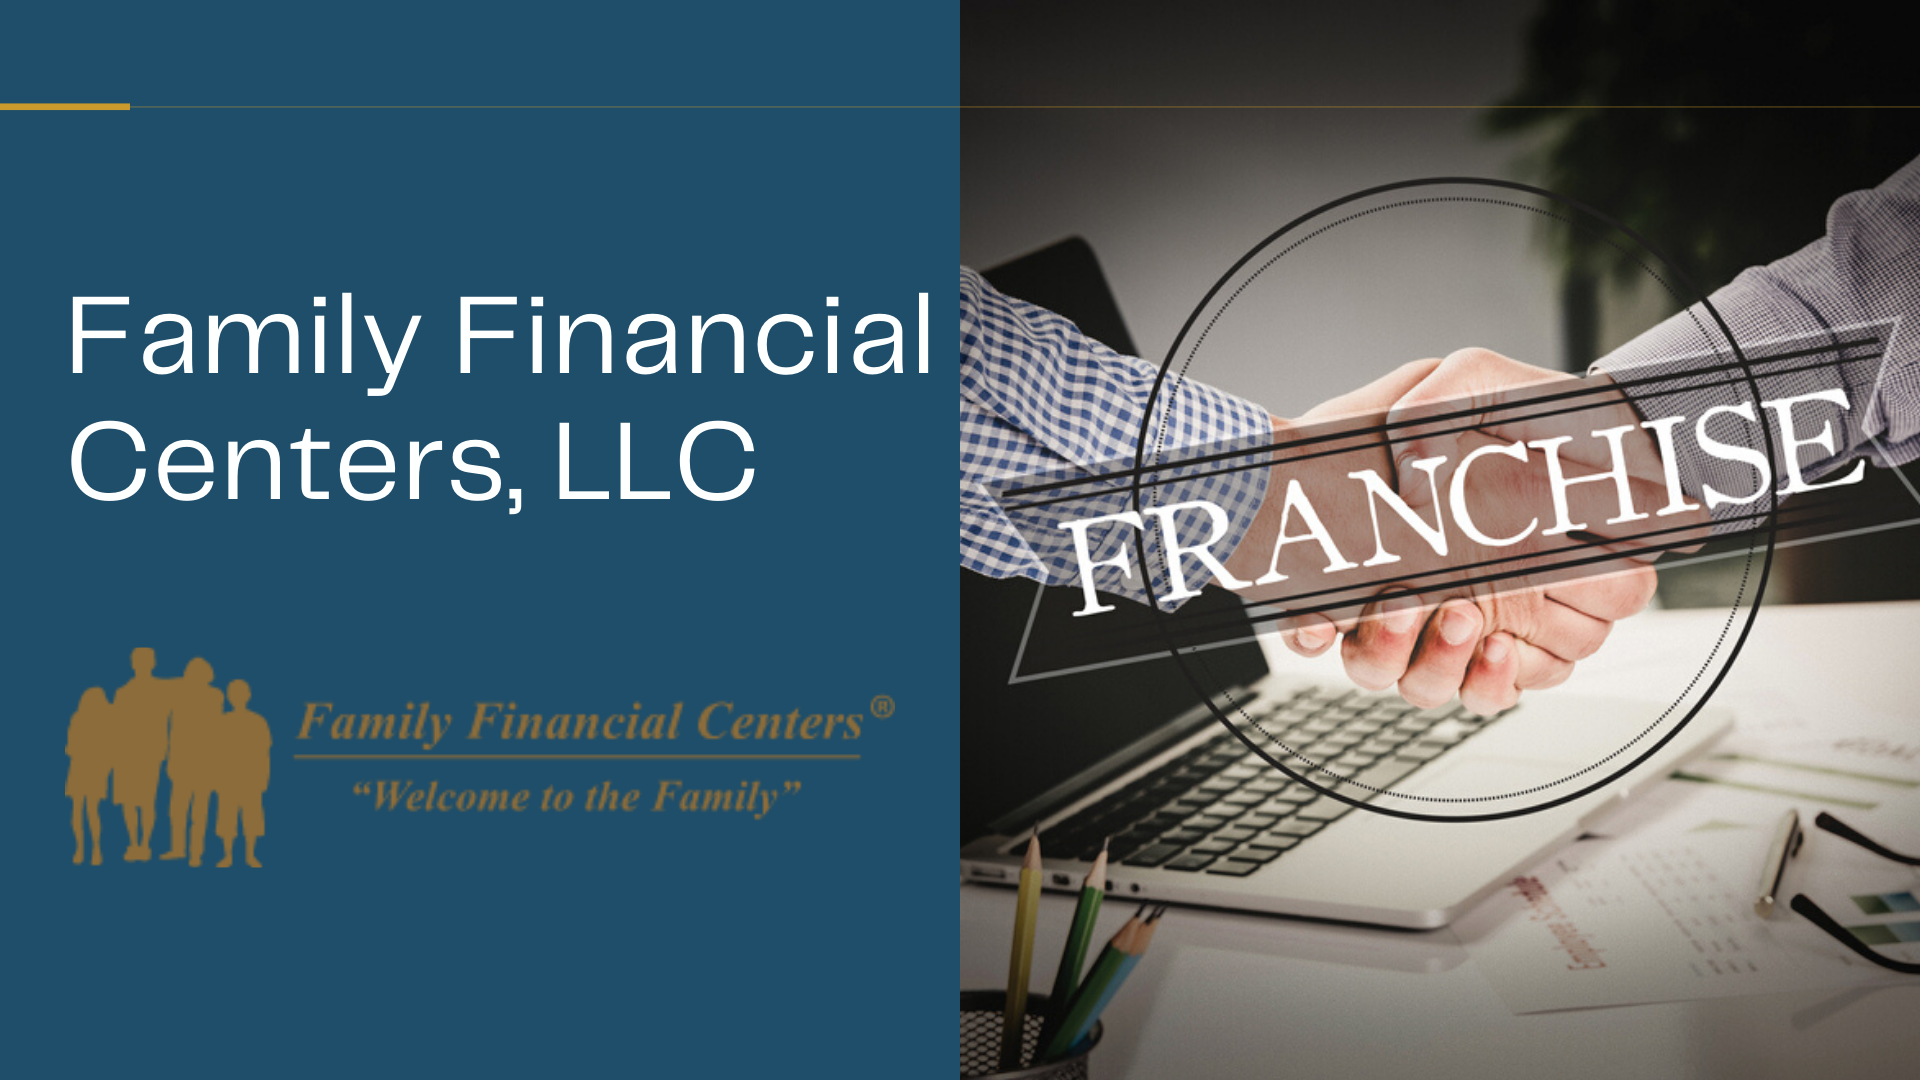 Family Financial Centers Announces Expansion Plans in Several Markets